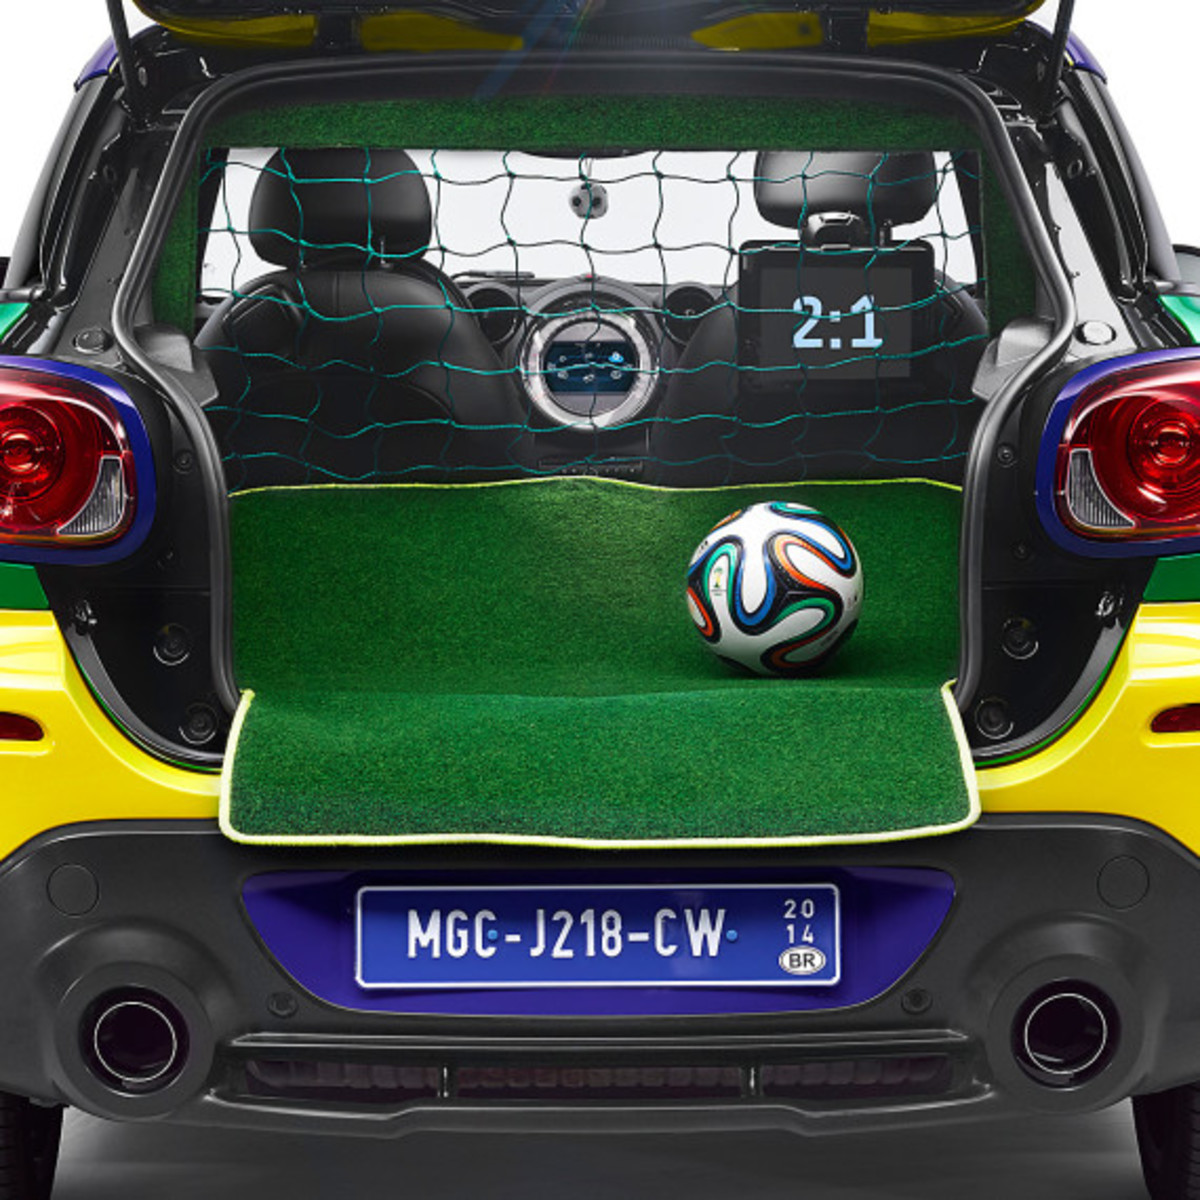 MINI Paceman GoalCooper - Featuring Soccer Pitch and Auto Tailgate Goalkeeper - 11